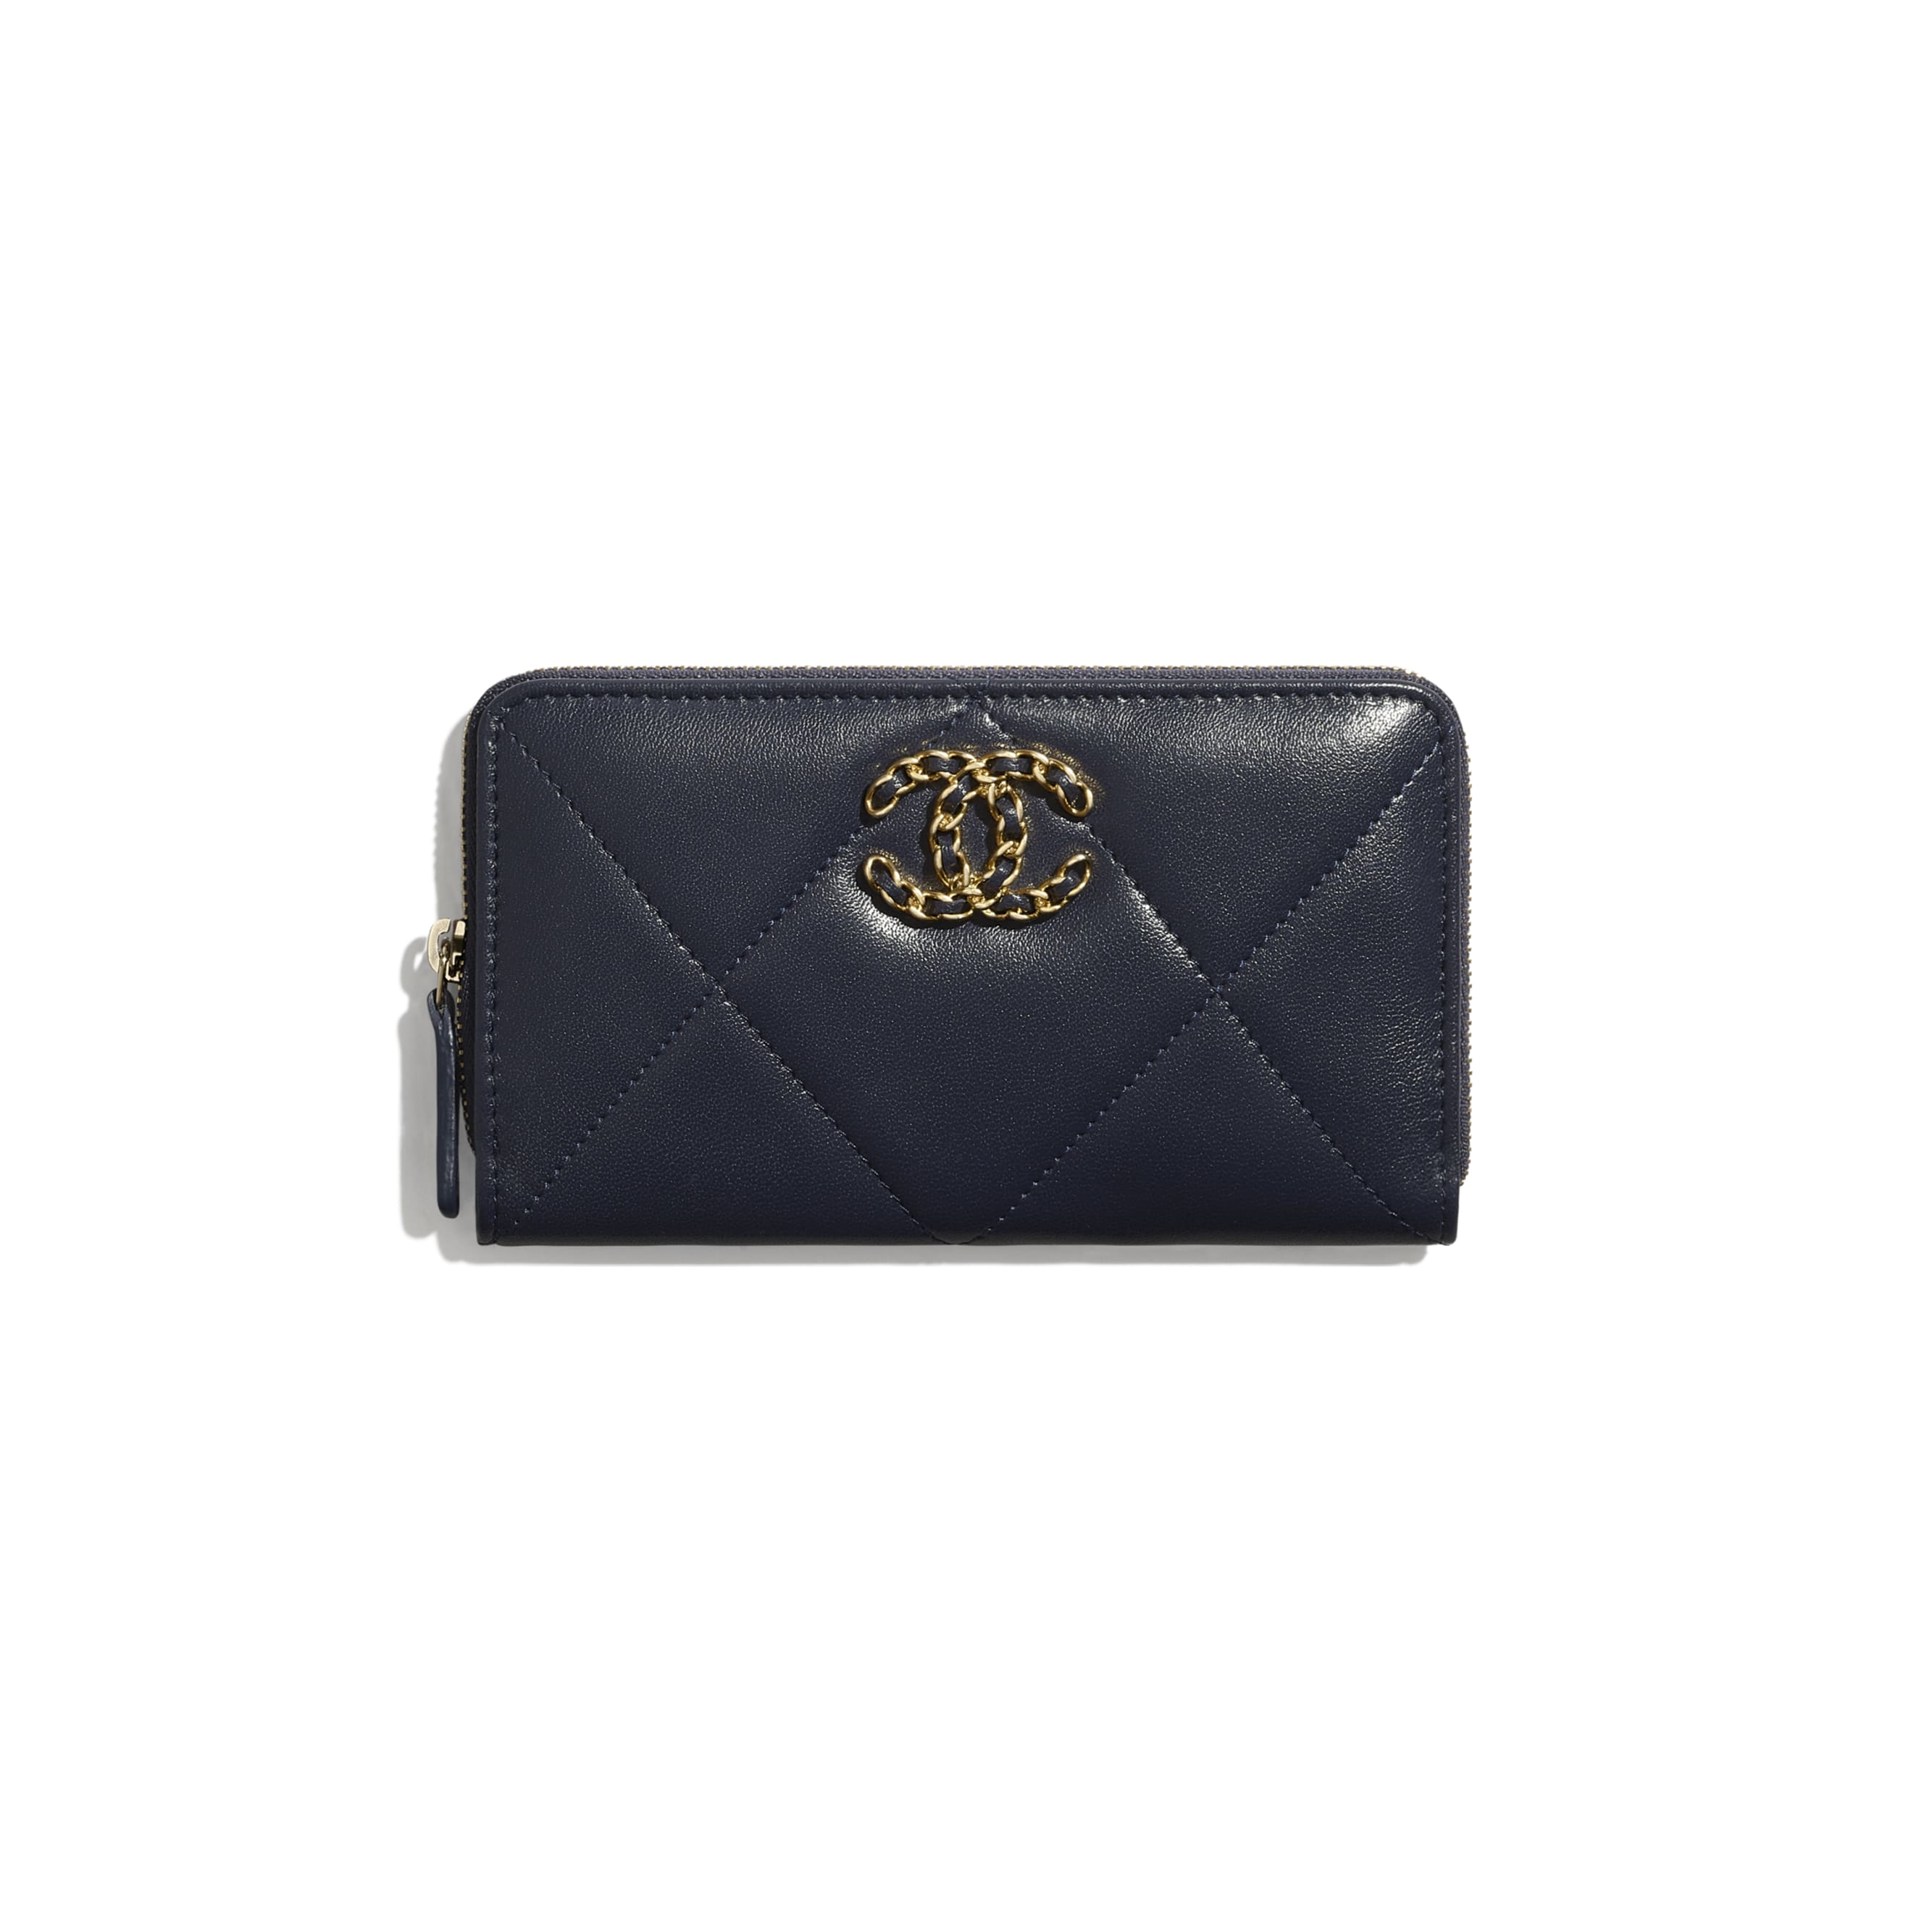 CHANEL 19 Zipped Wallet - Navy Blue - Lambskin, Gold-Tone, Silver-Tone & Ruthenium-Finish Metal - CHANEL - Default view - see standard sized version